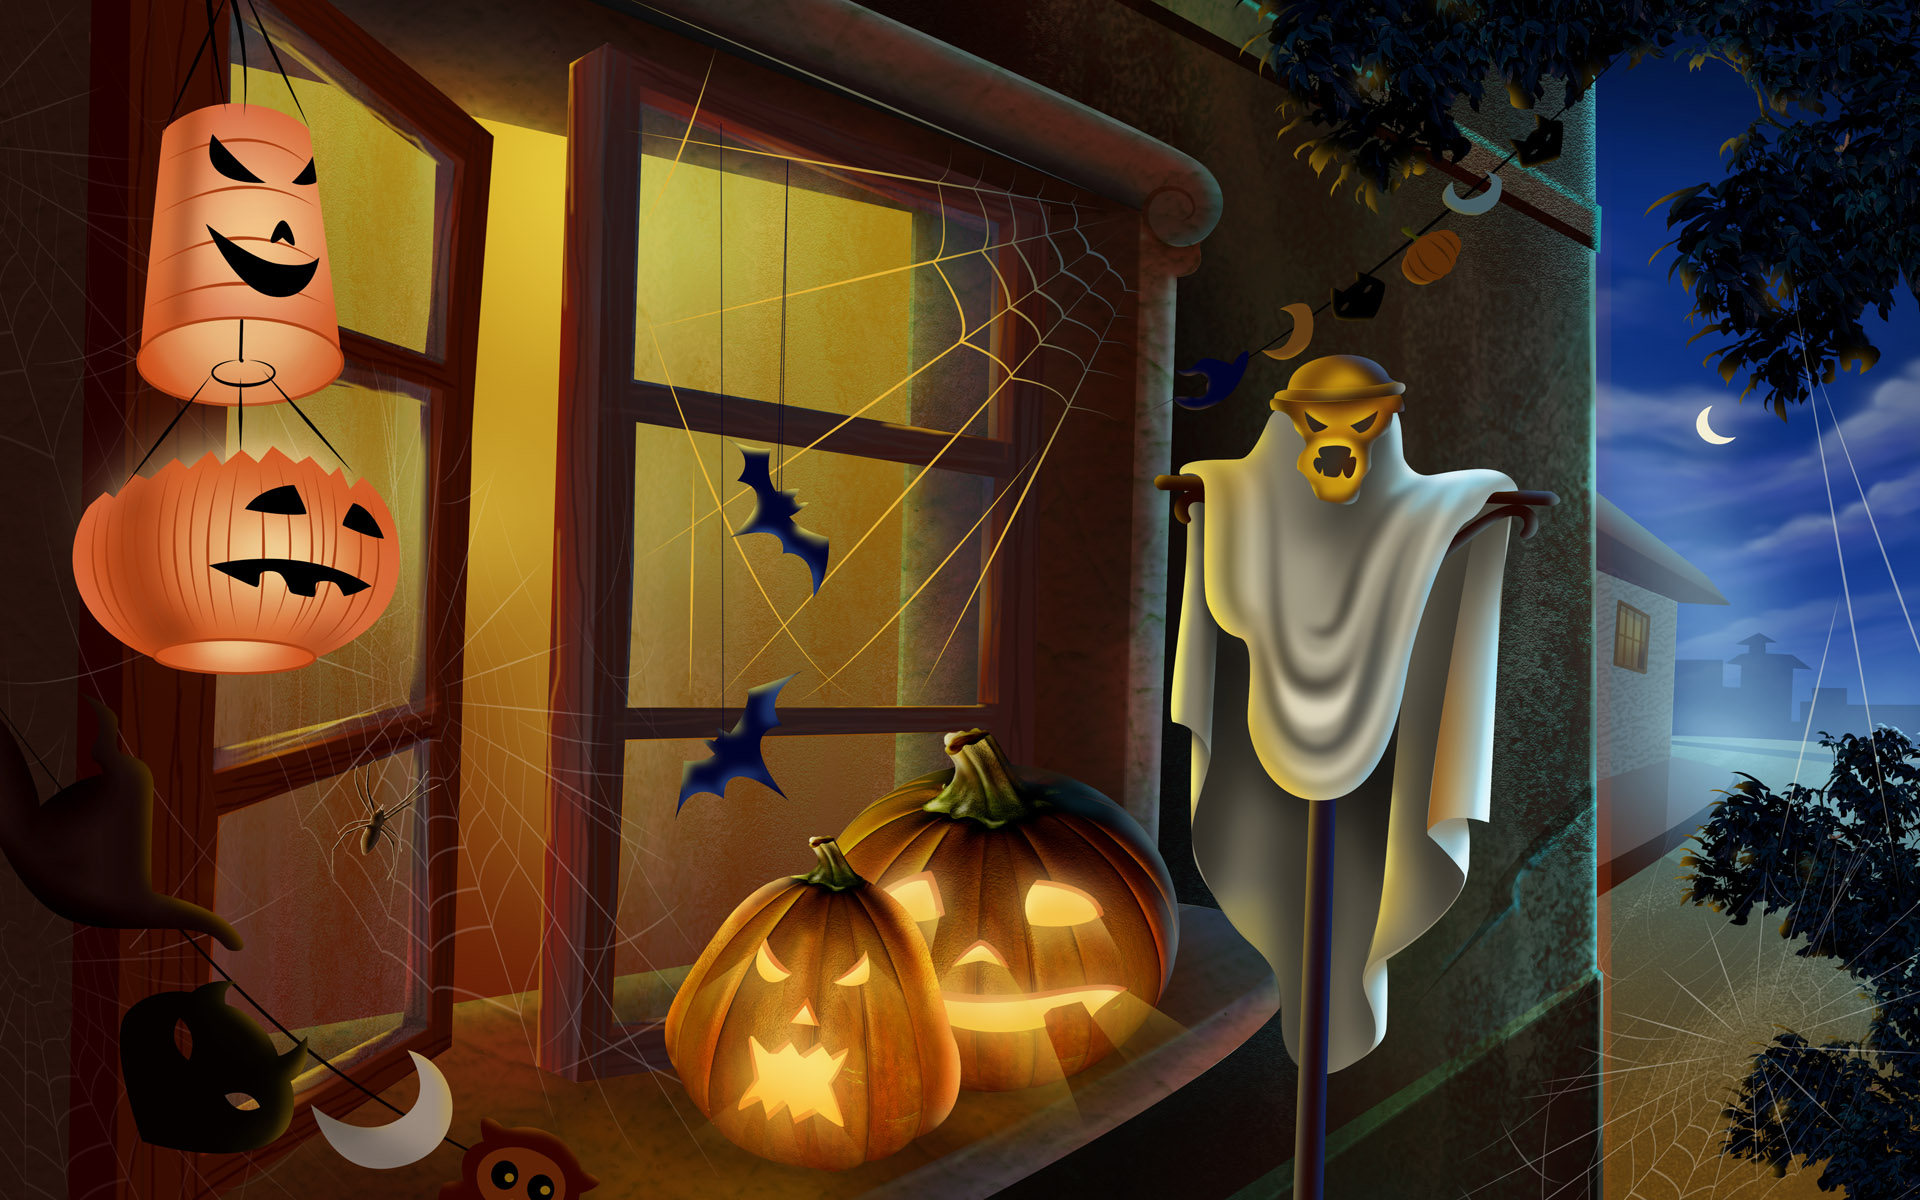 Scary-Halloween-2012-Outdoor-Decorations-HD-Wallpaper-2